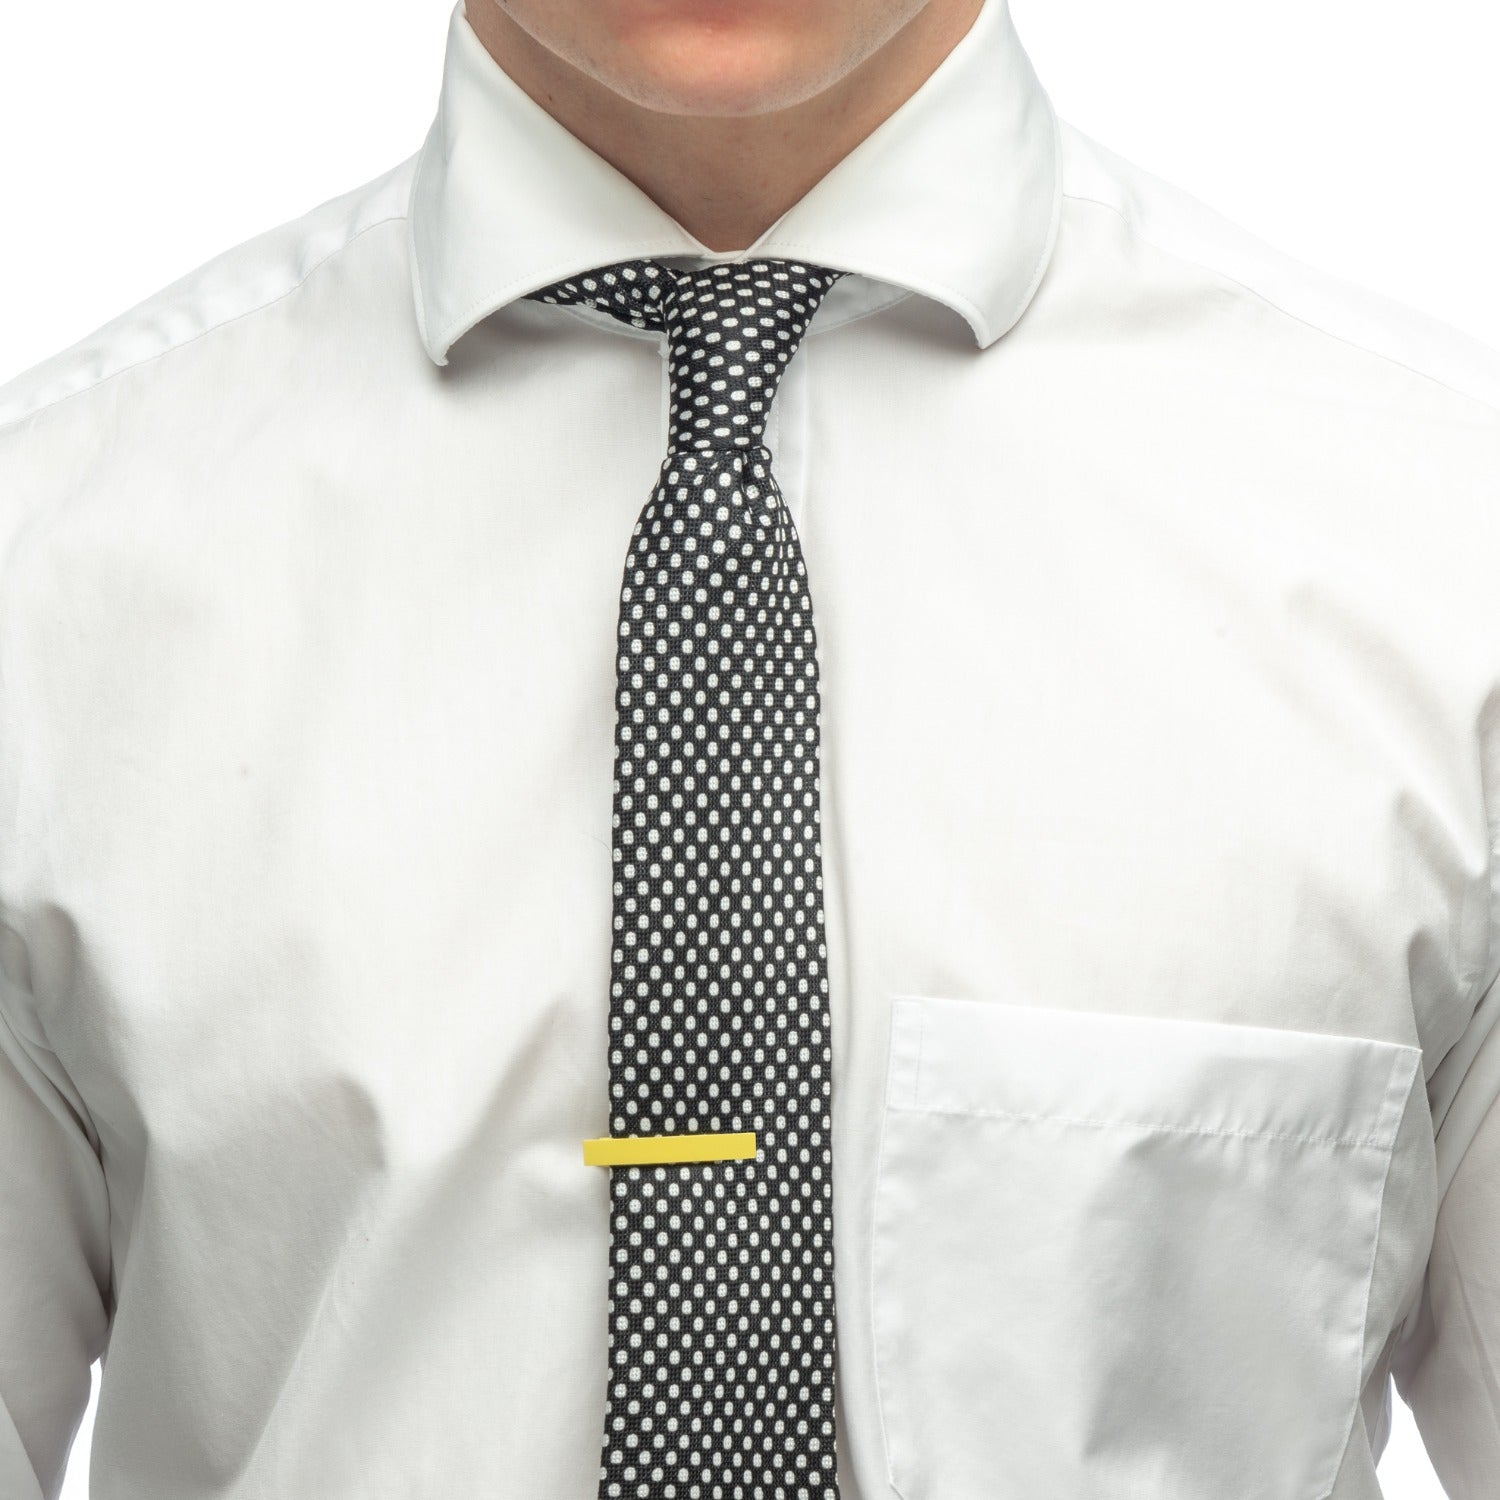 Aeon | Milan Tie Clip | Yellow Enamel Coated Stainless Steel